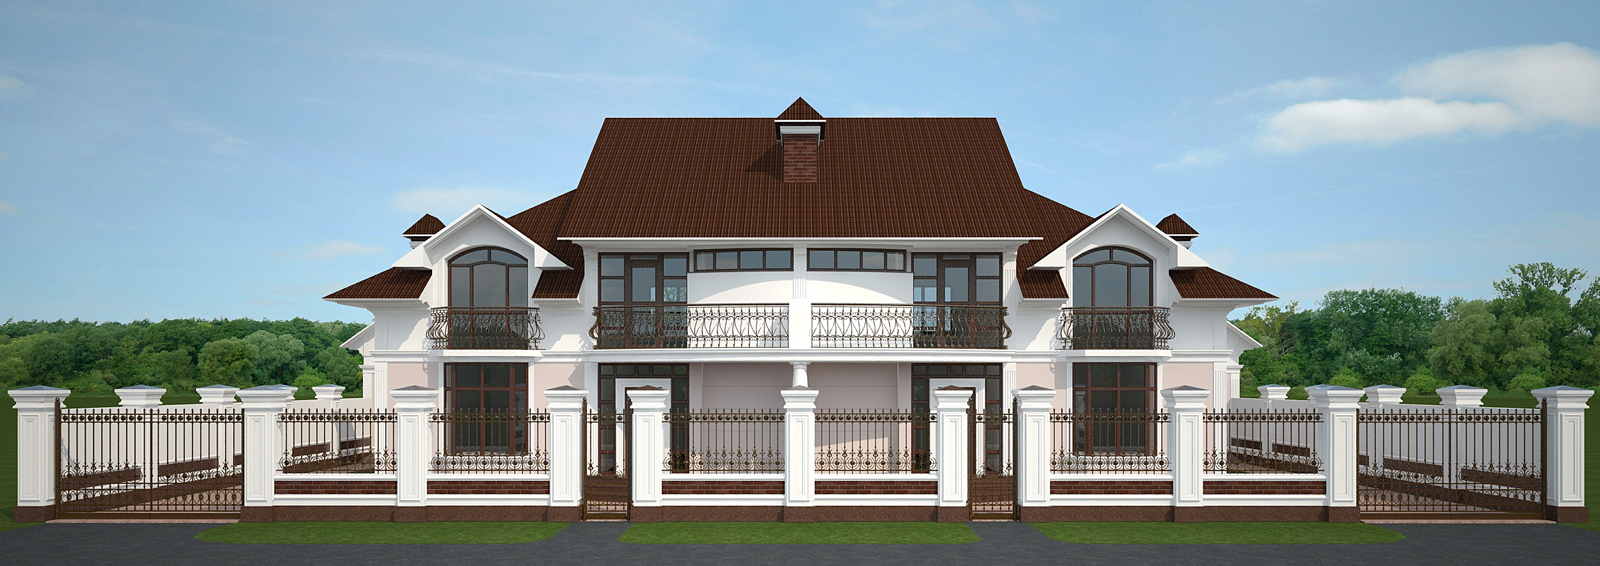 House classic style exterior decoration by sergiu for Classic home exteriors